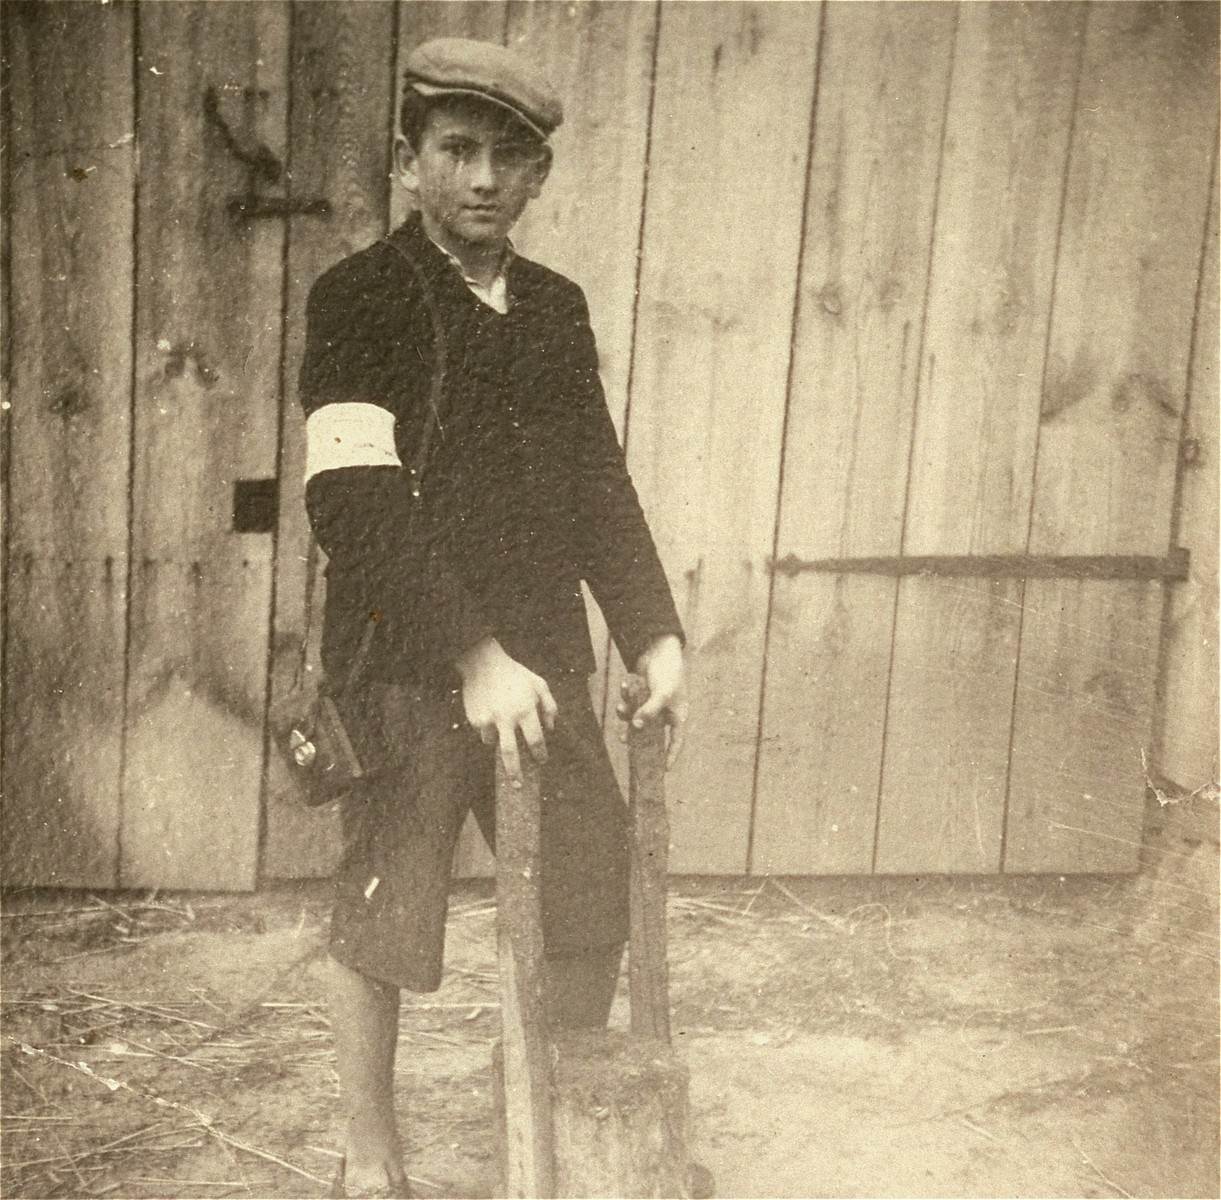 A Jewish youth wearing an armband poses holding a farm implement in the Kolbuszowa ghetto.  Pictured is Manius Notowicz.